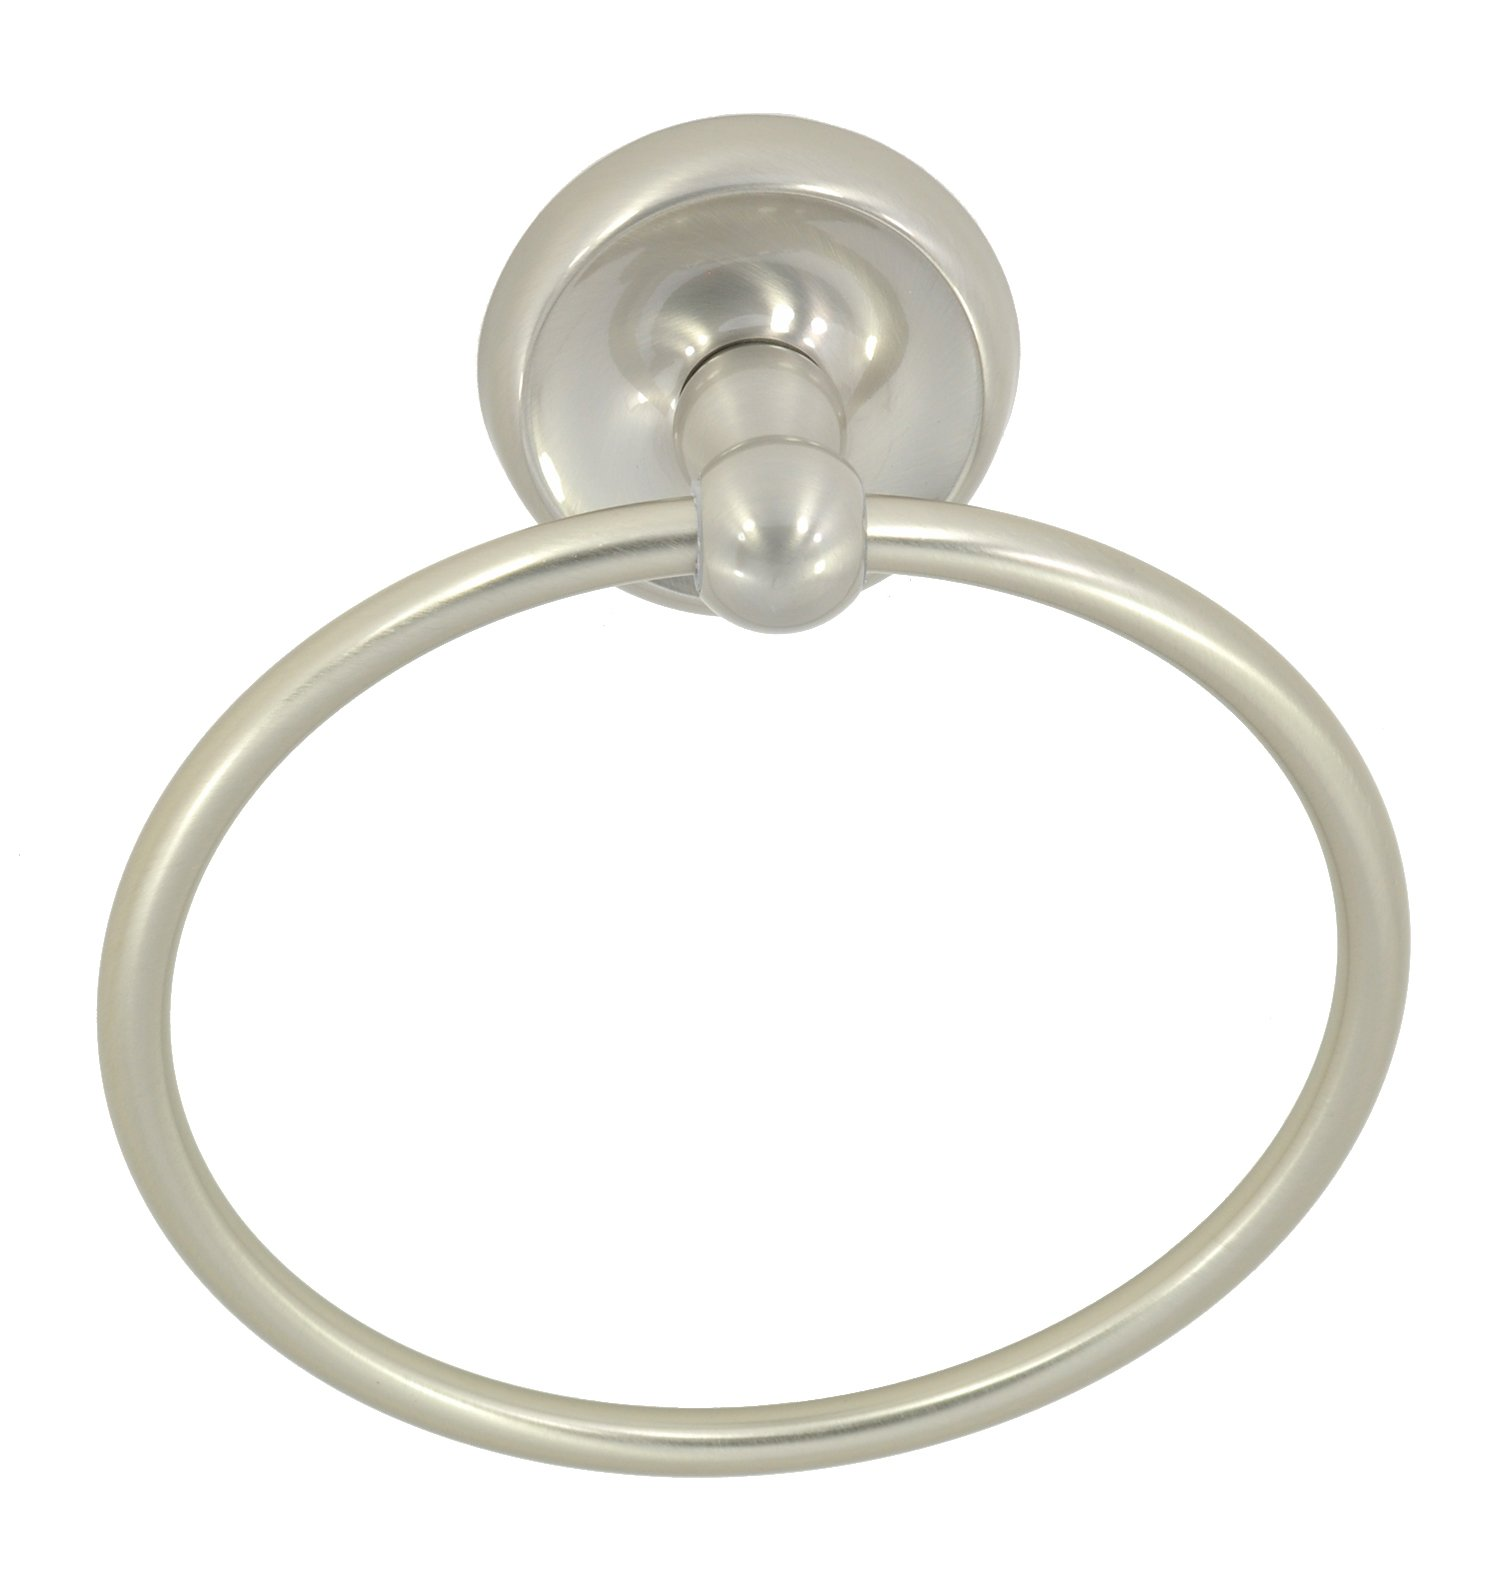 Better Home Products Miraloma Towel Ring, Satin Nickel